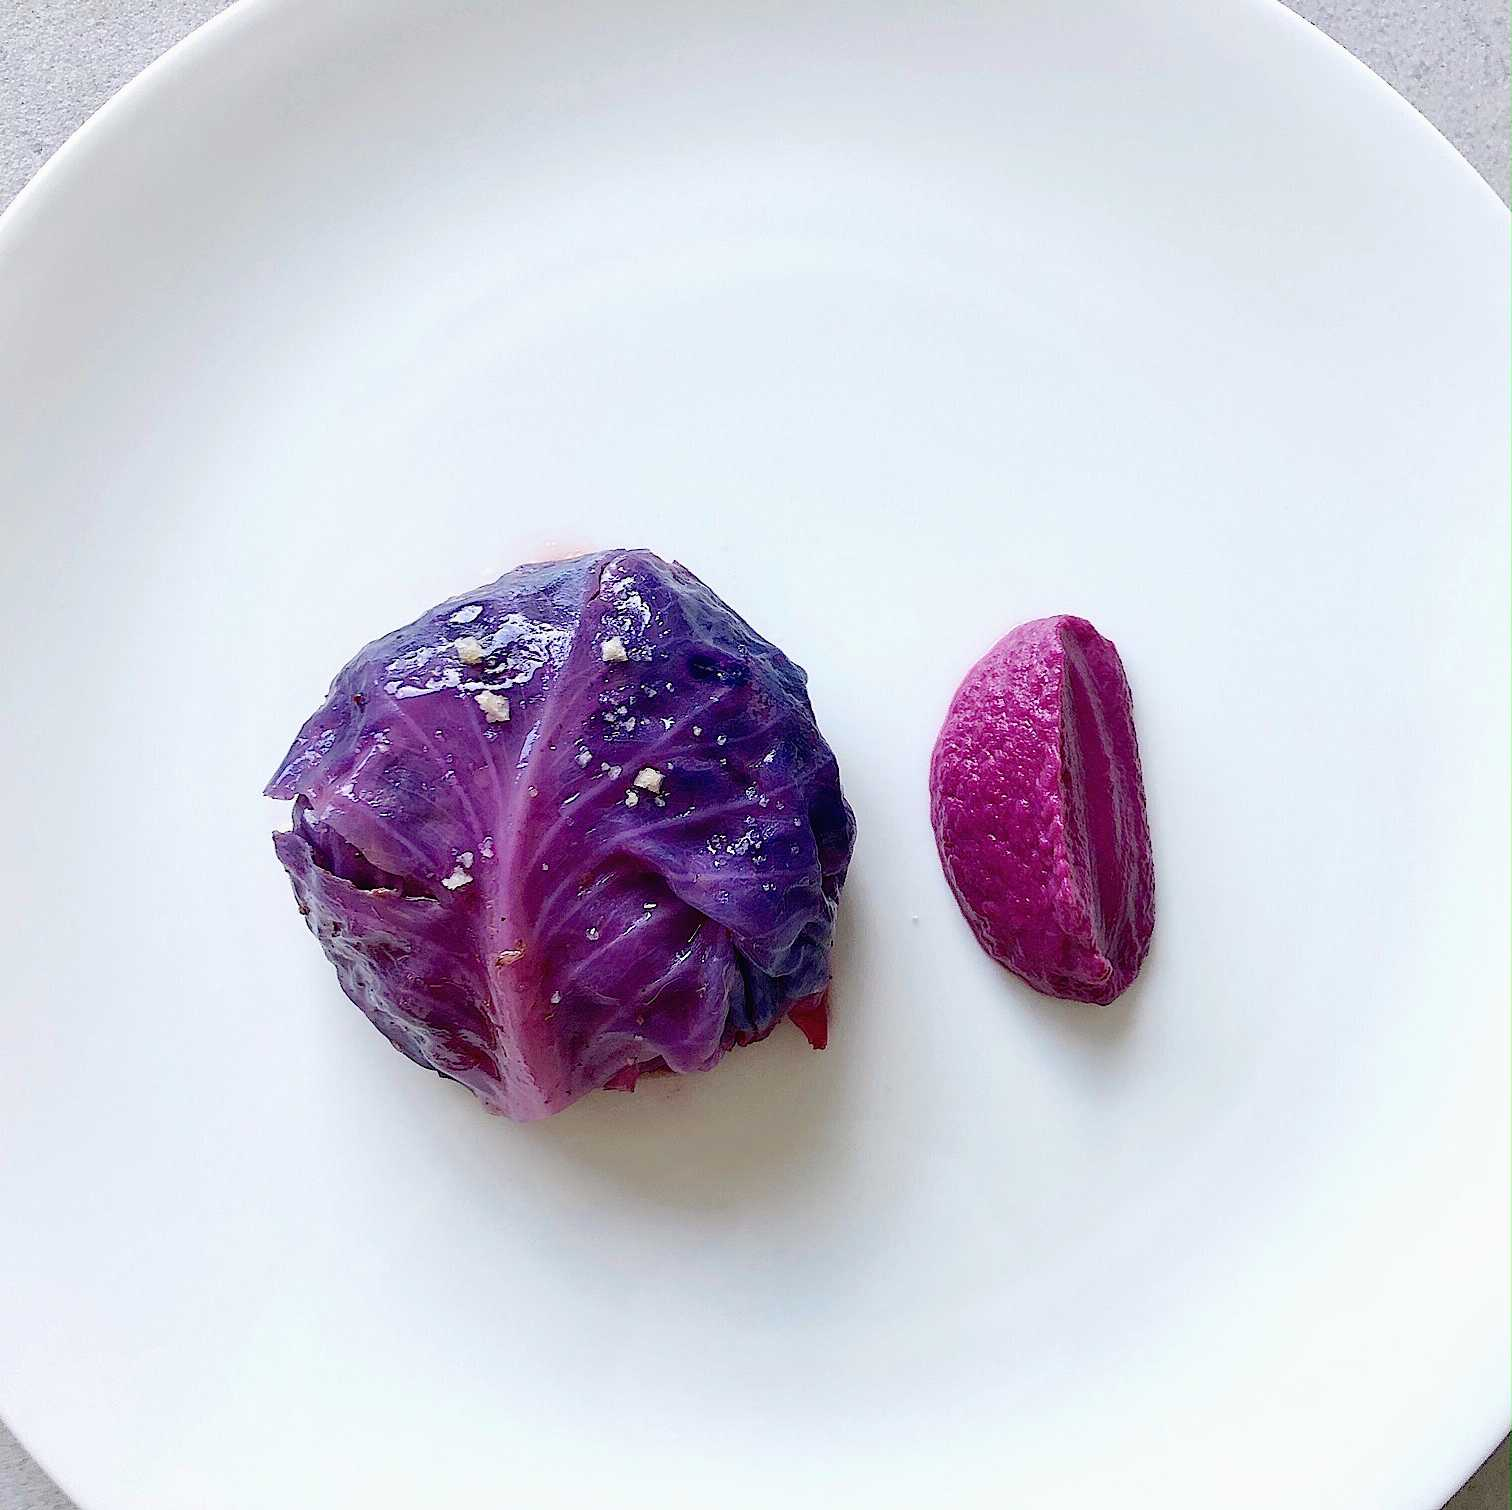 Stuffed Cabbage recipe with truffle